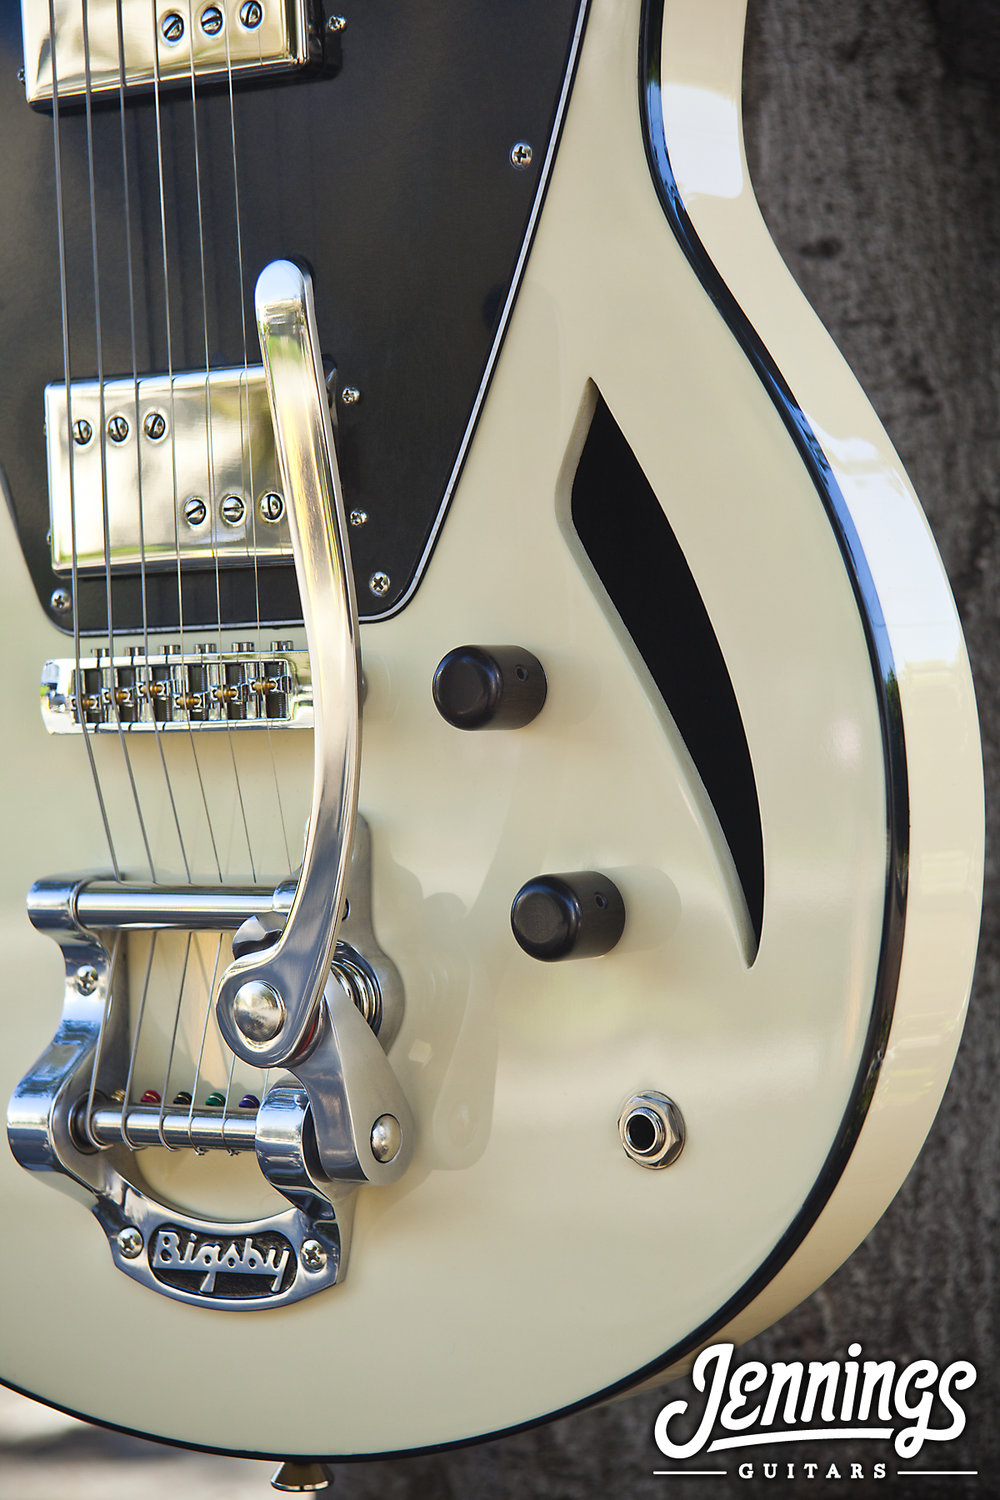 Cream Catalina Jennings Guitars (5).jpg